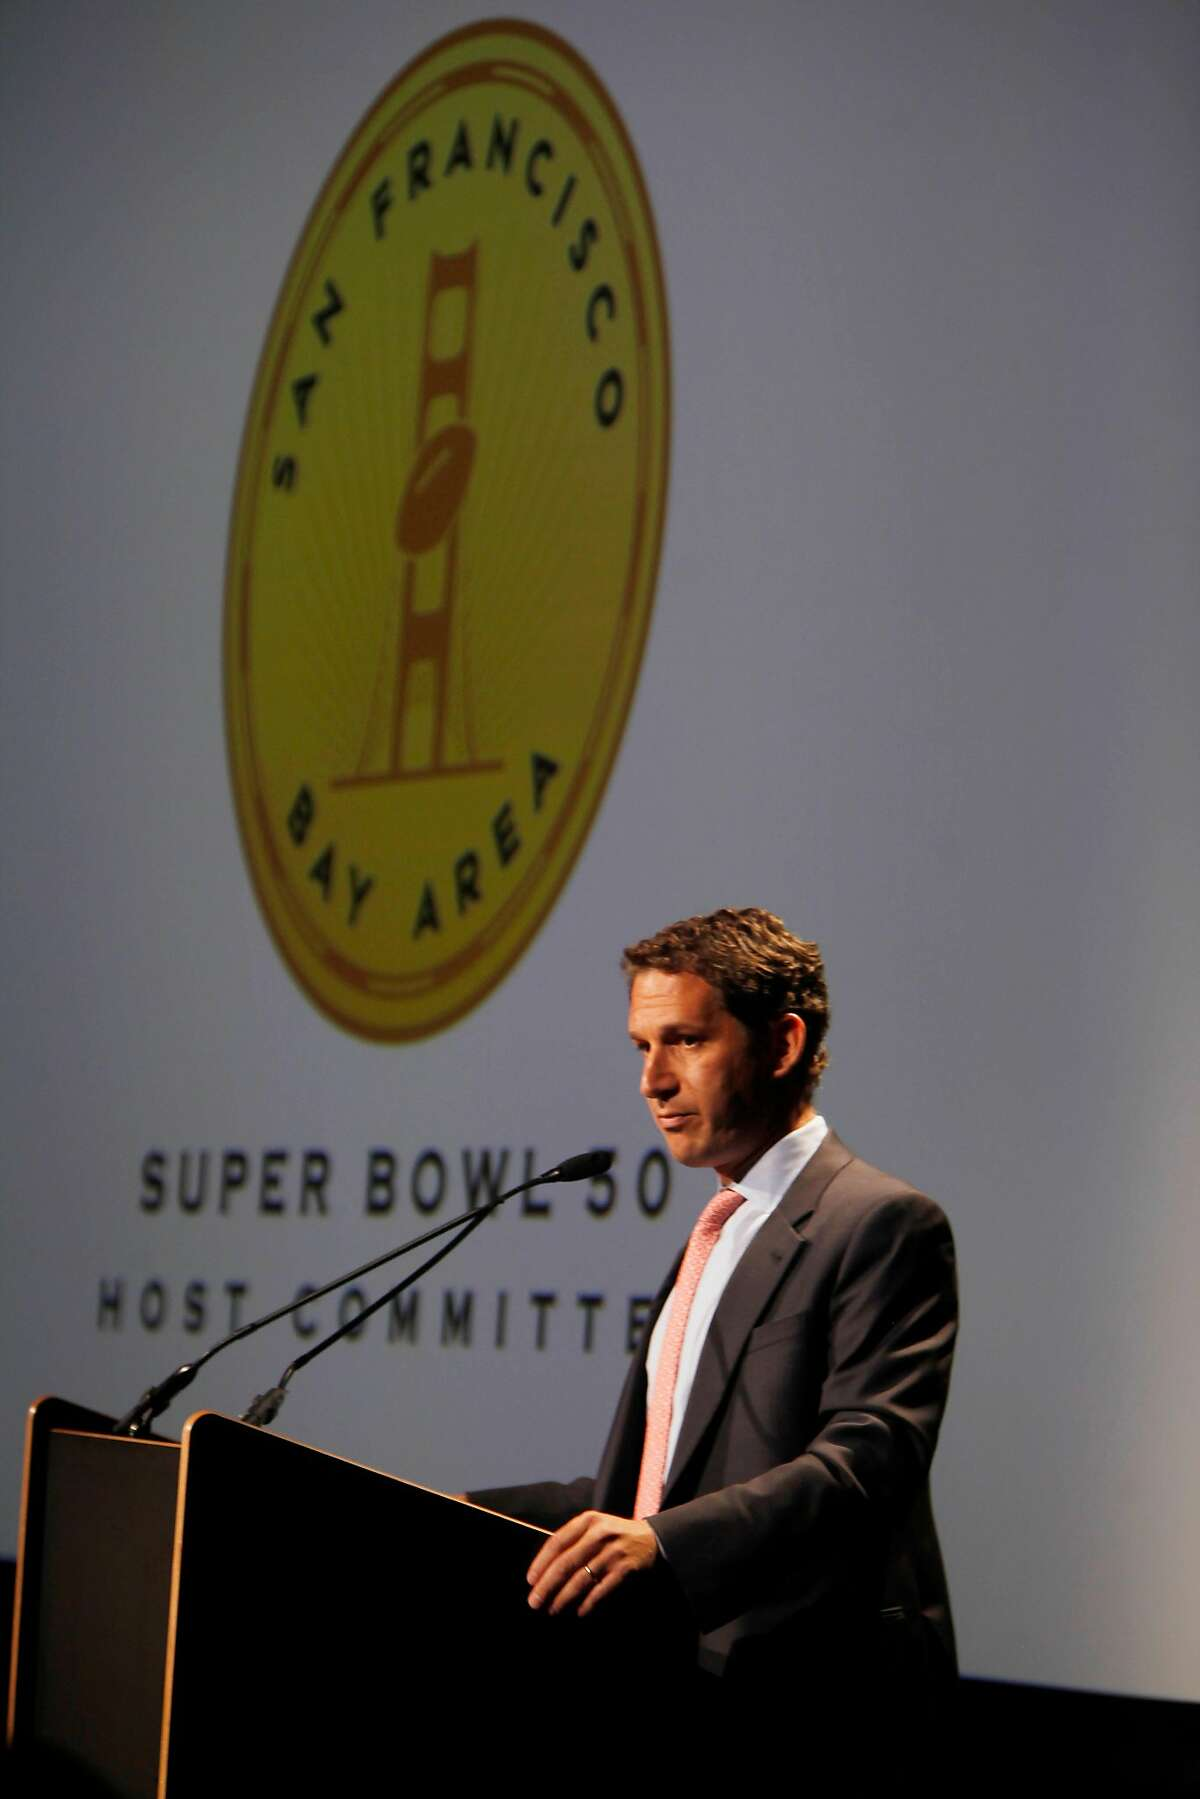 Daniel Lurie, Chair, San Francisco Bay Area Super Bowl 50 Host Committee speaks during a press conference updating plans for the 2016 Superbowl held by the San Francisco Bay Area Super Bowl 50 Host Committee in the Kanbar Forum at the Exploratorium on Thursday June 5, 2014 in San Francisco, Calif.